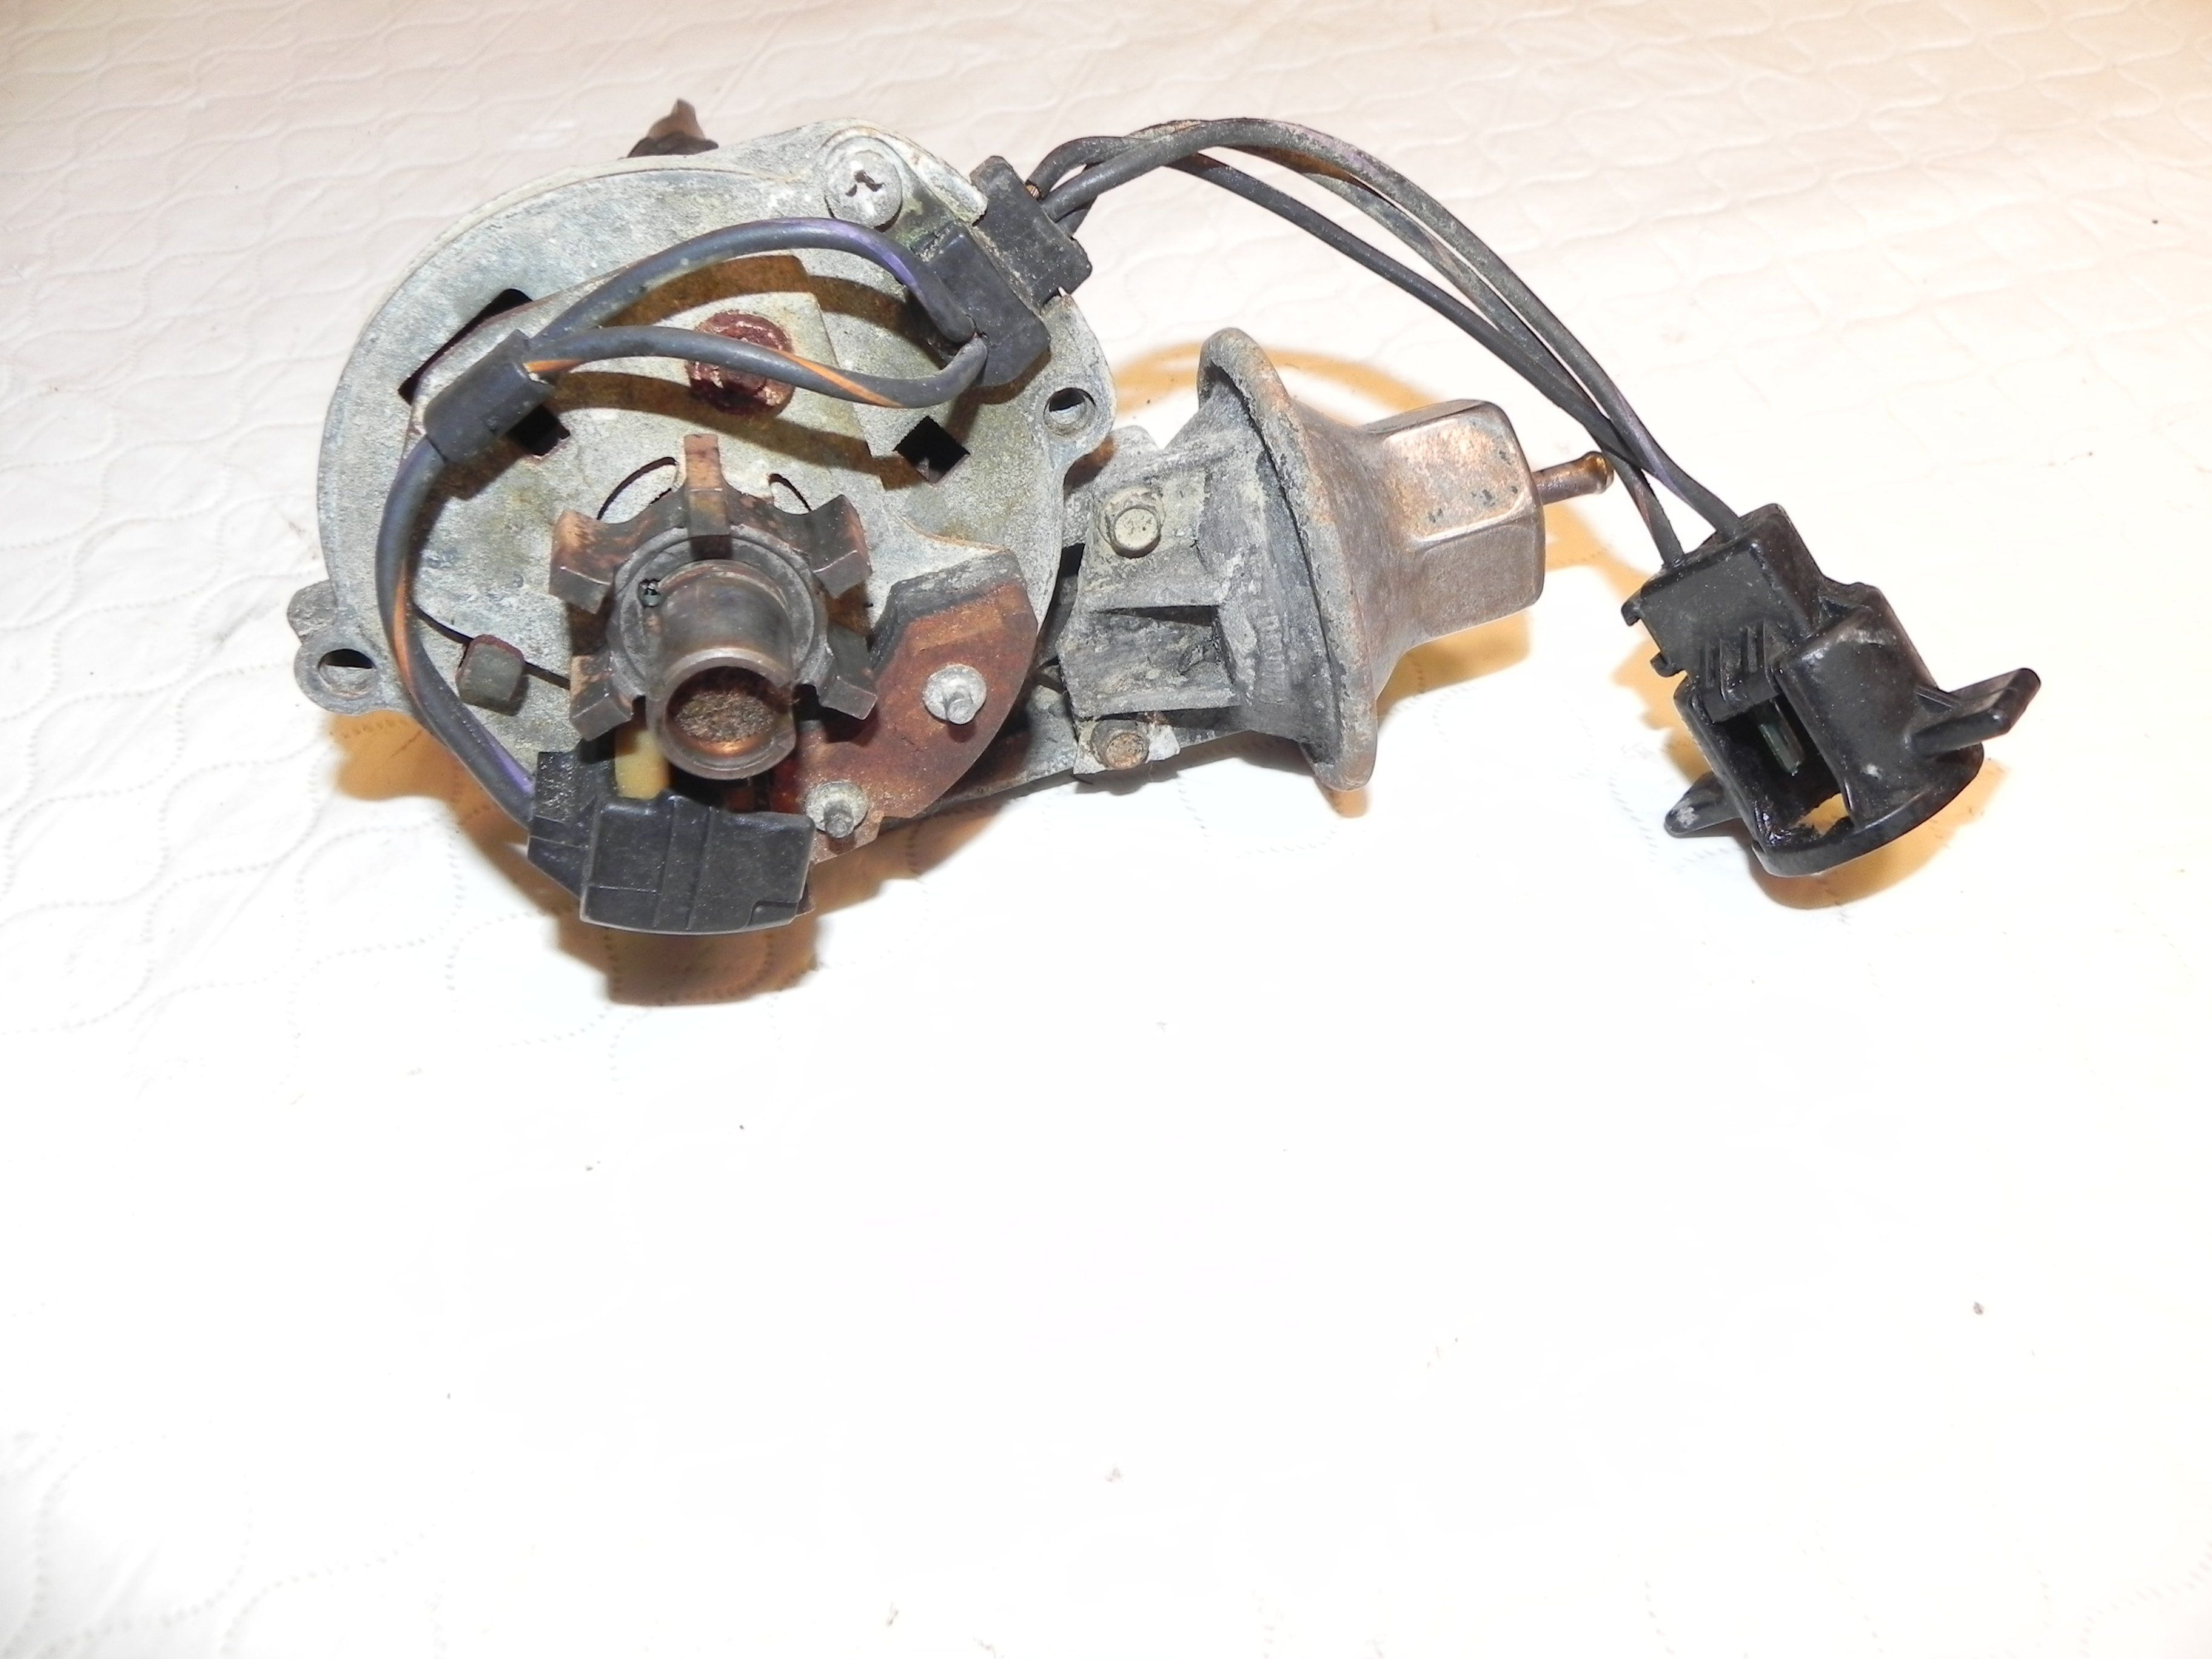 Jeep Wrangler Yj Cj Cherokee 42l 6 Cyl Distributor 84 90 1987 Electrical Wiring Used Factory Original From A Cylinder Motor Donor